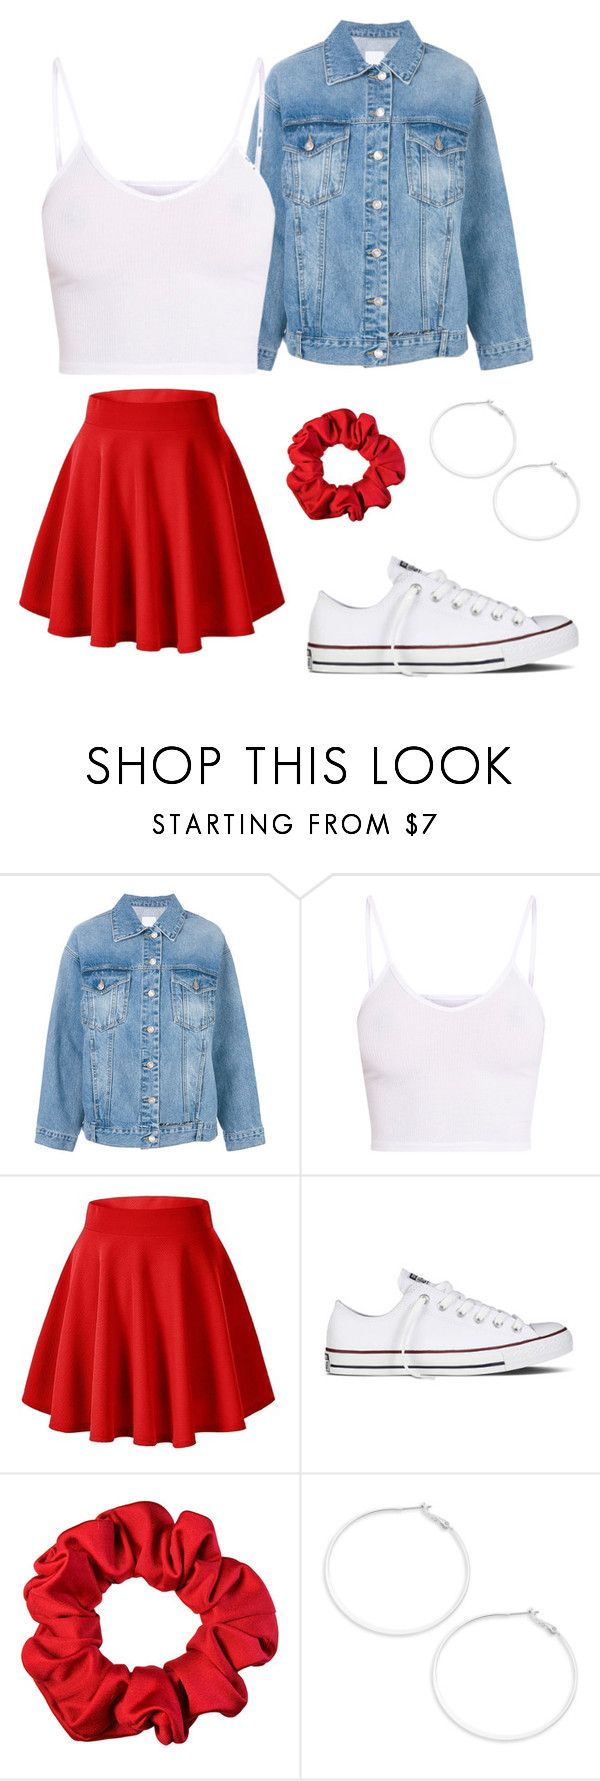 samantha - outfit 5 by electrasweetheart on Polyvore featuring BasicGrey, Steve J & Yoni P, Converse and Design Lab